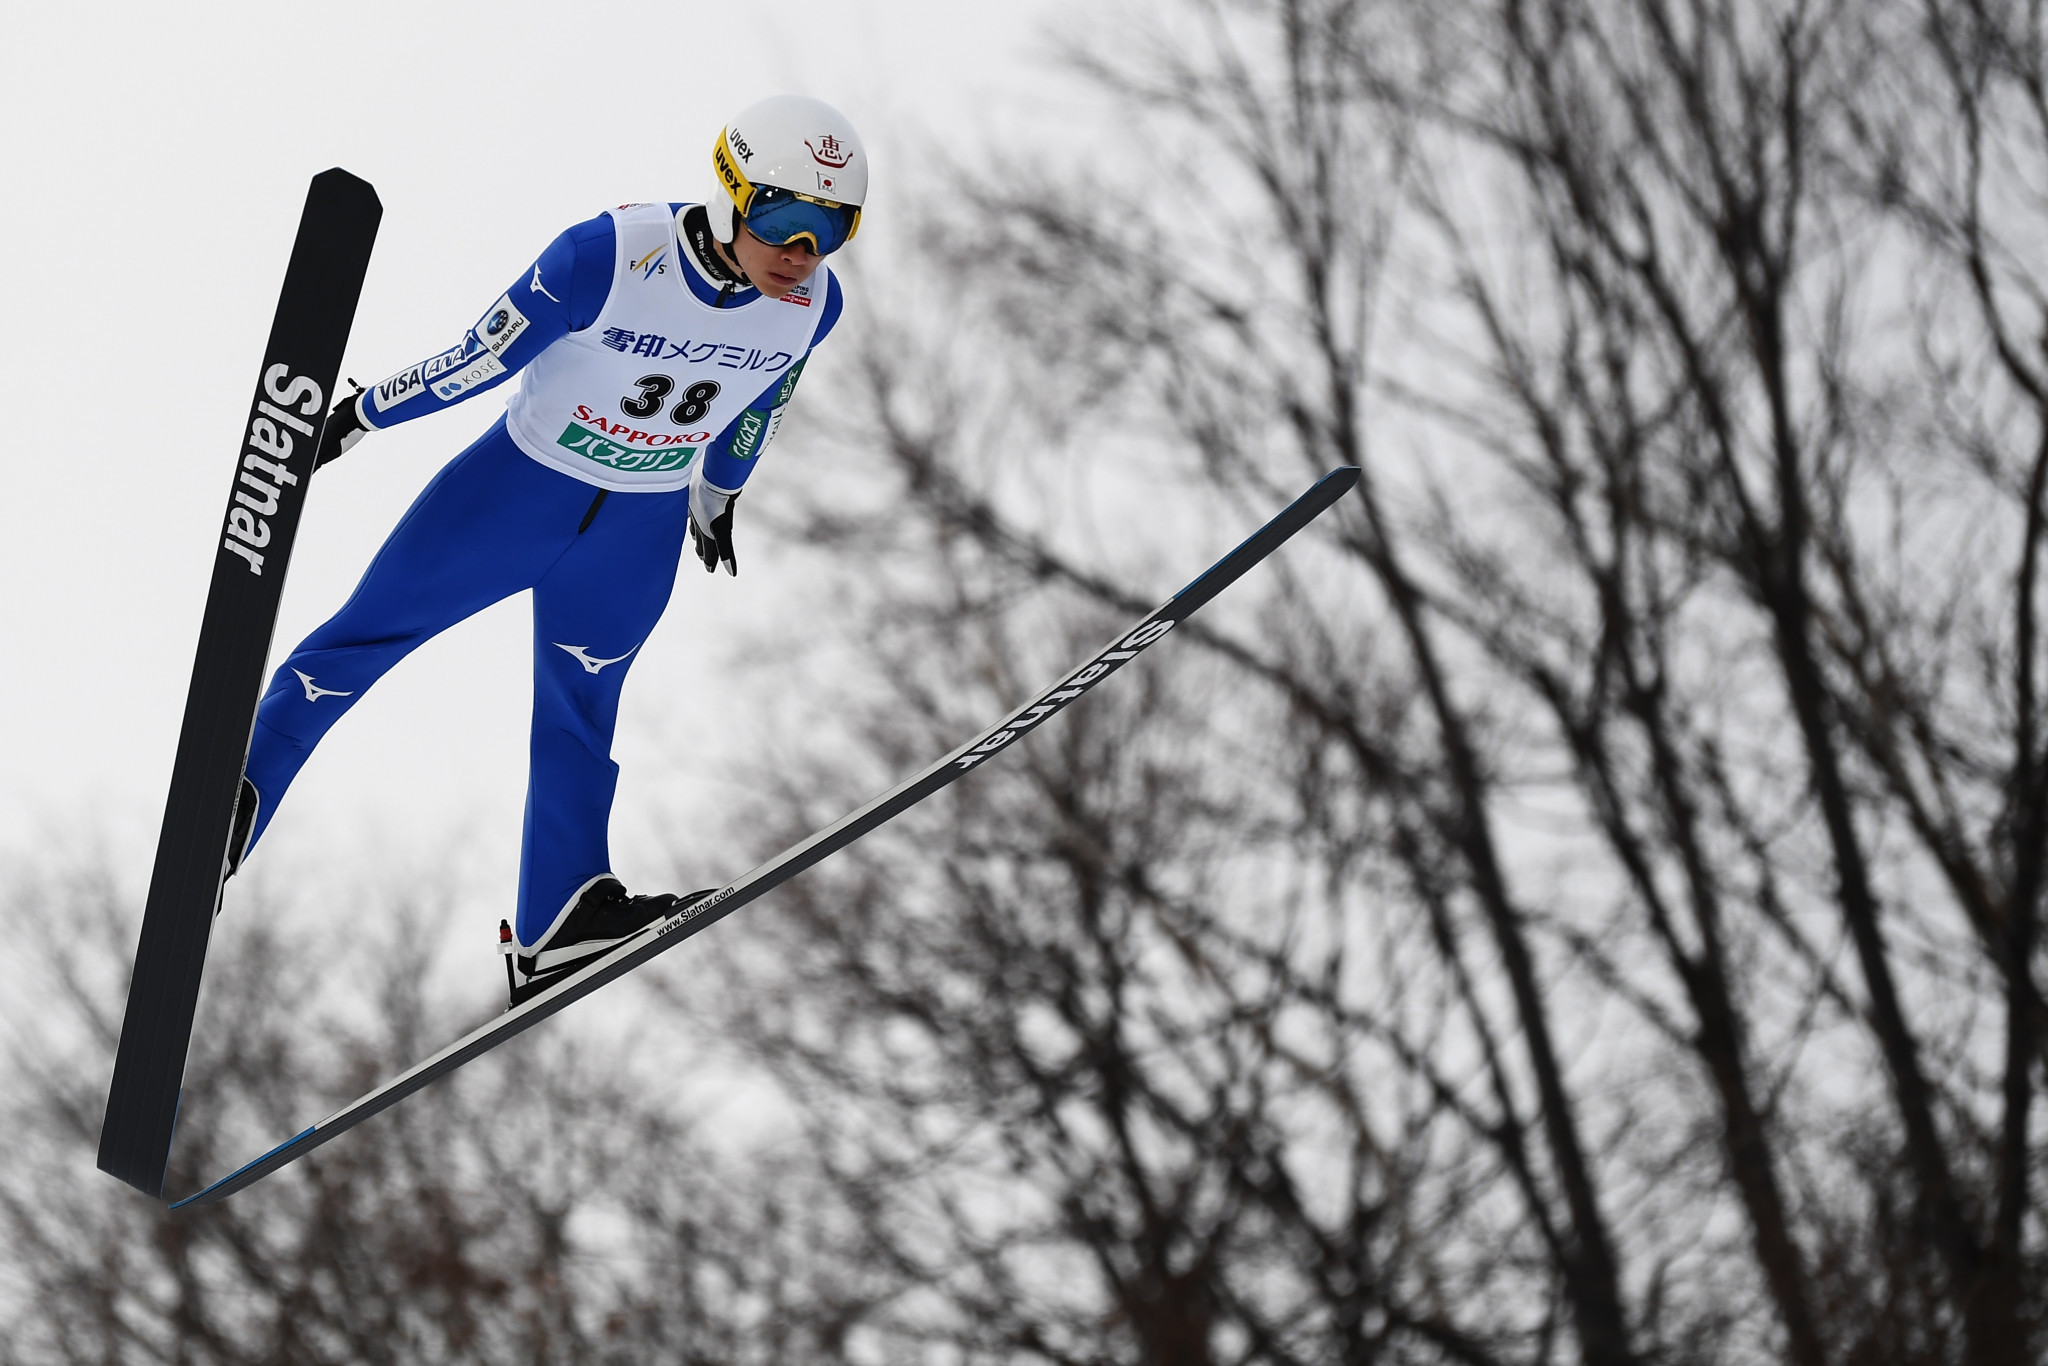 Yukiya Sato is the first Japanese ski jumper to win a men's individual World Cup event in Japan since Daiki Ito in 2012 ©Getty Images